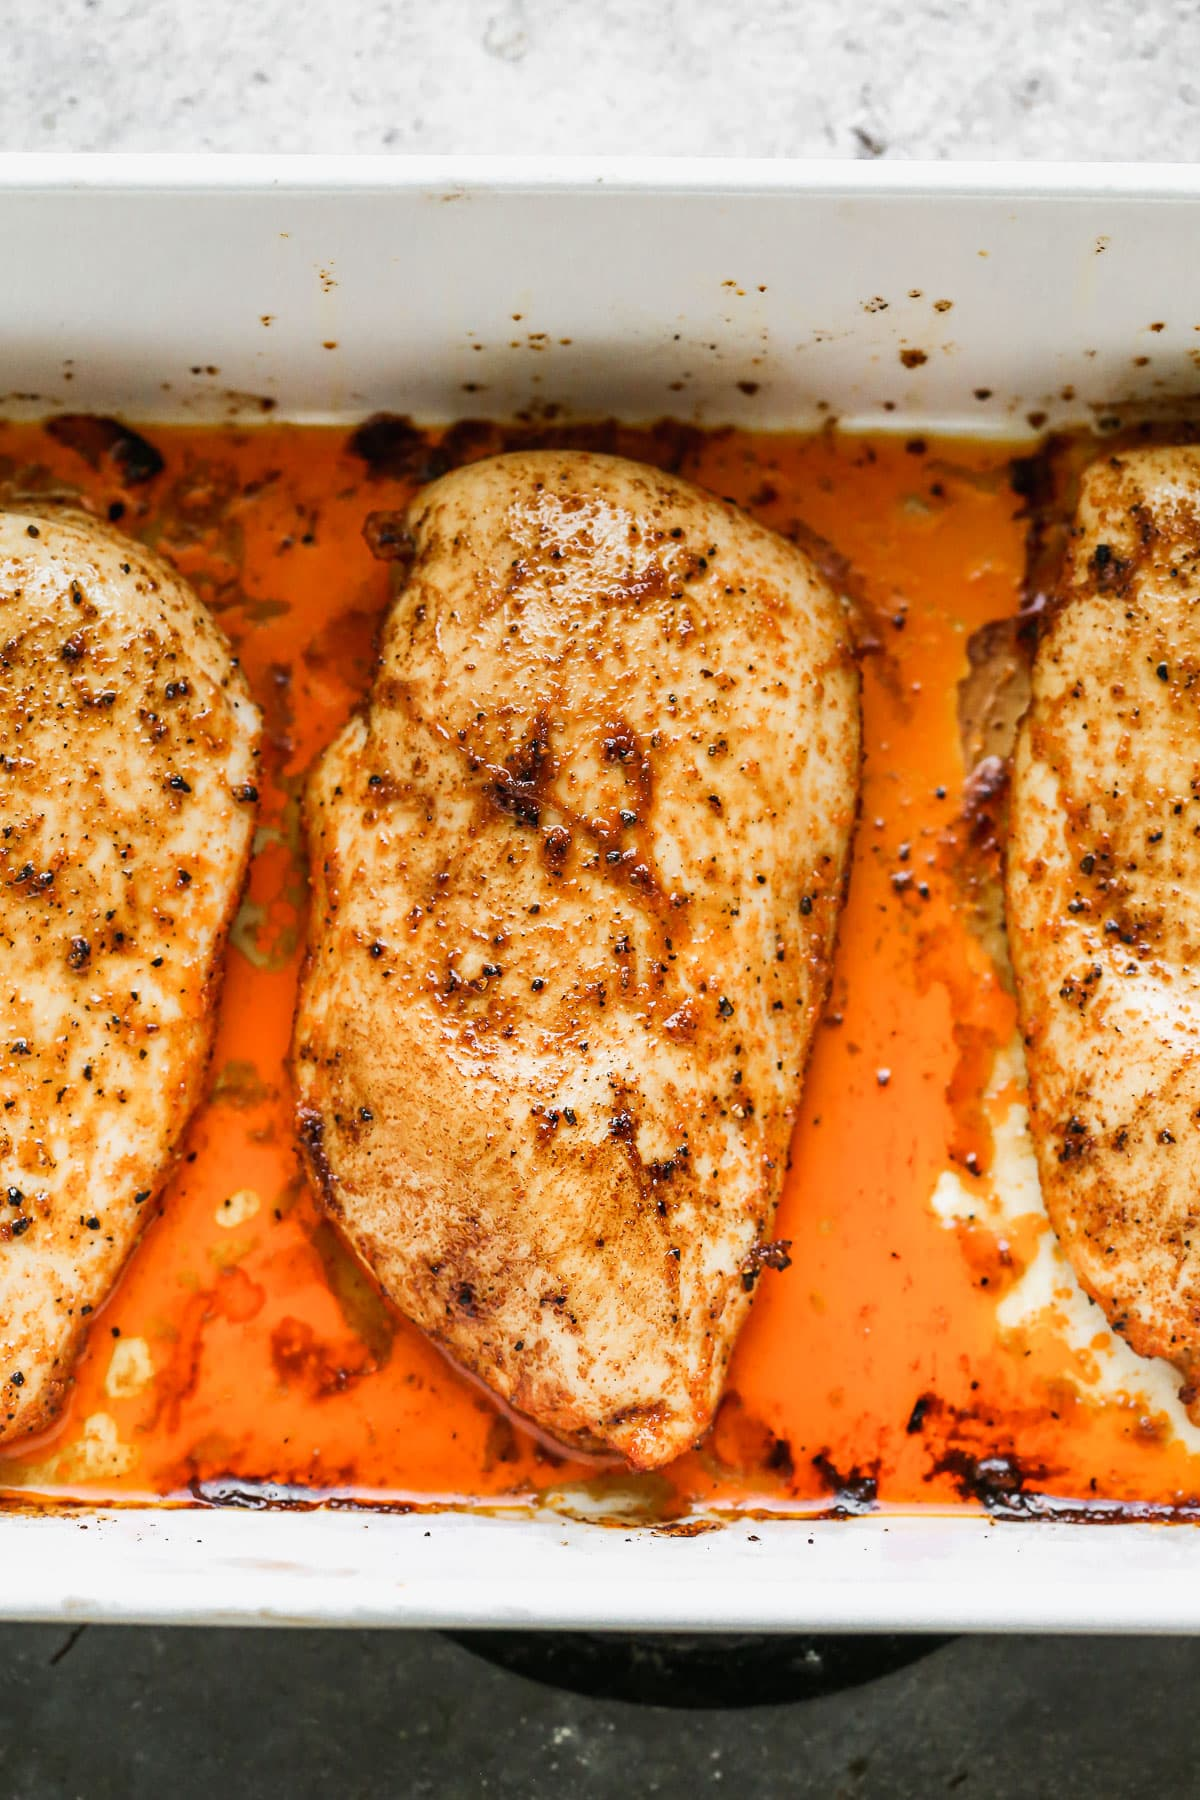 Three chicken breasts in a baking dish